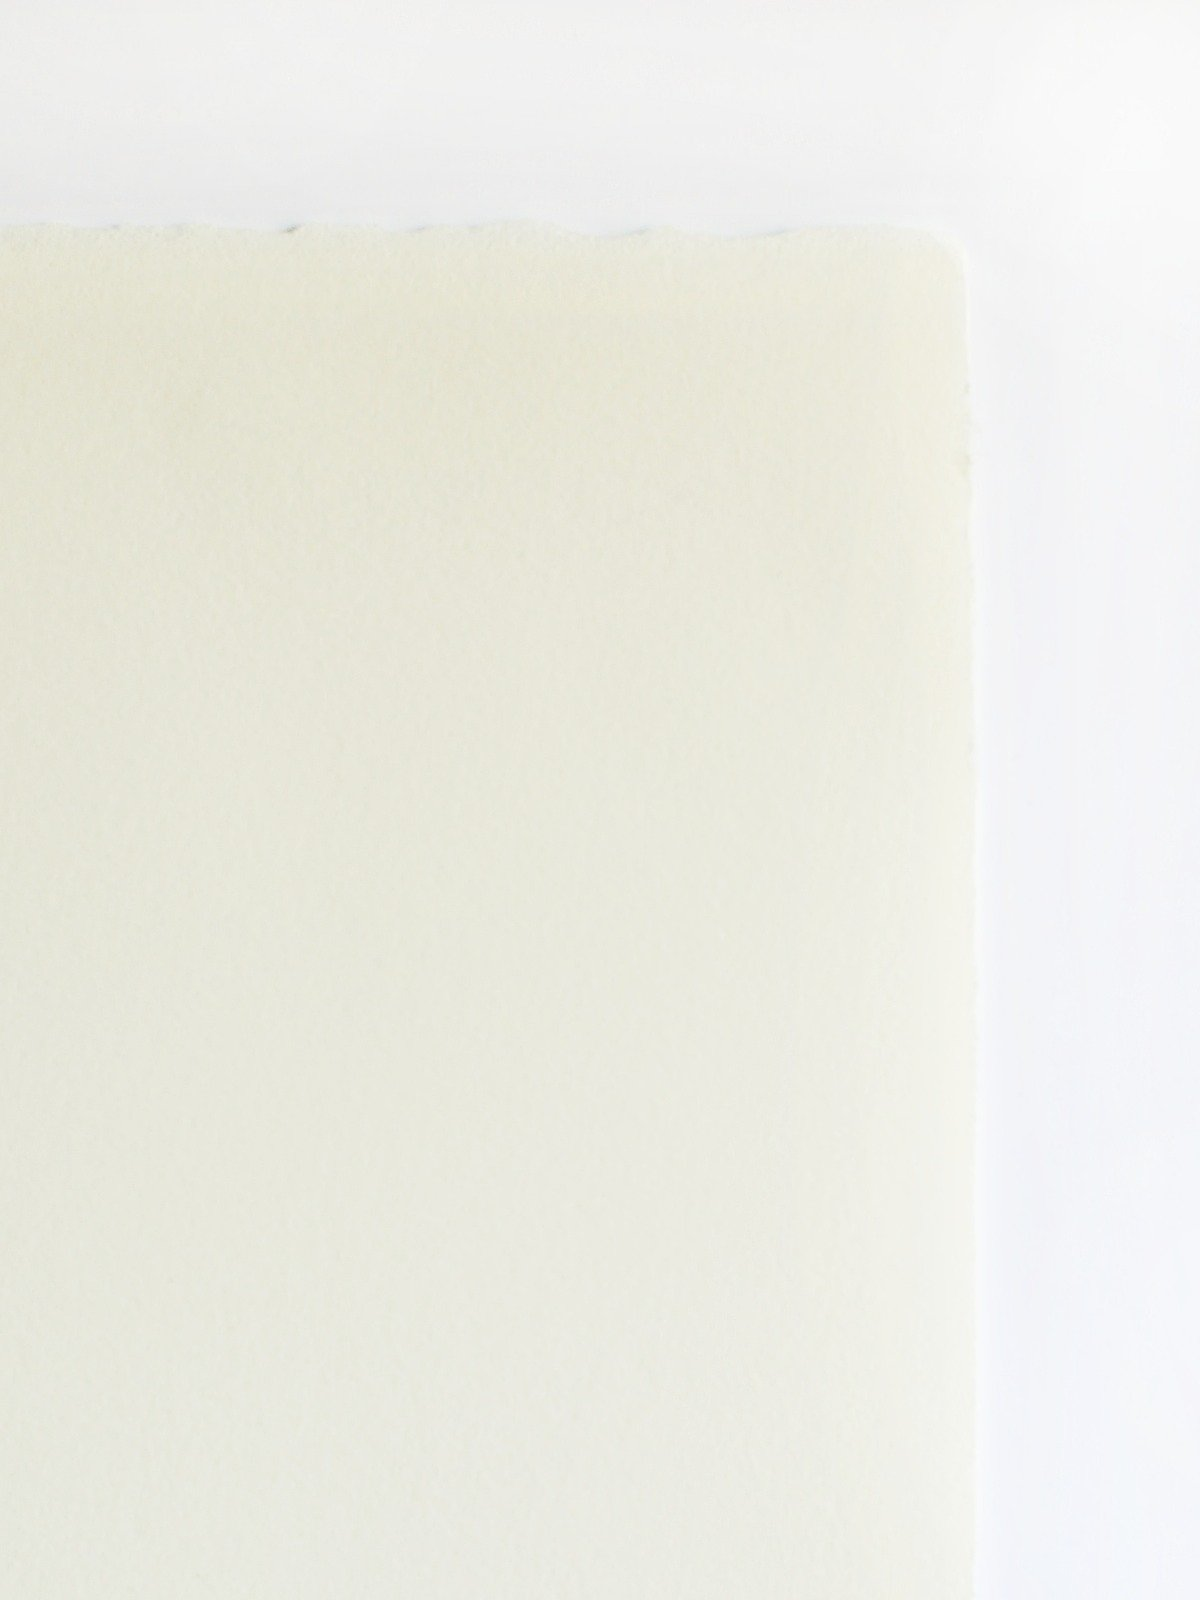 Arches Rives Heavyweight Paper white 19 in. x 26 in. sheet [PACK OF 10 ] by Arches